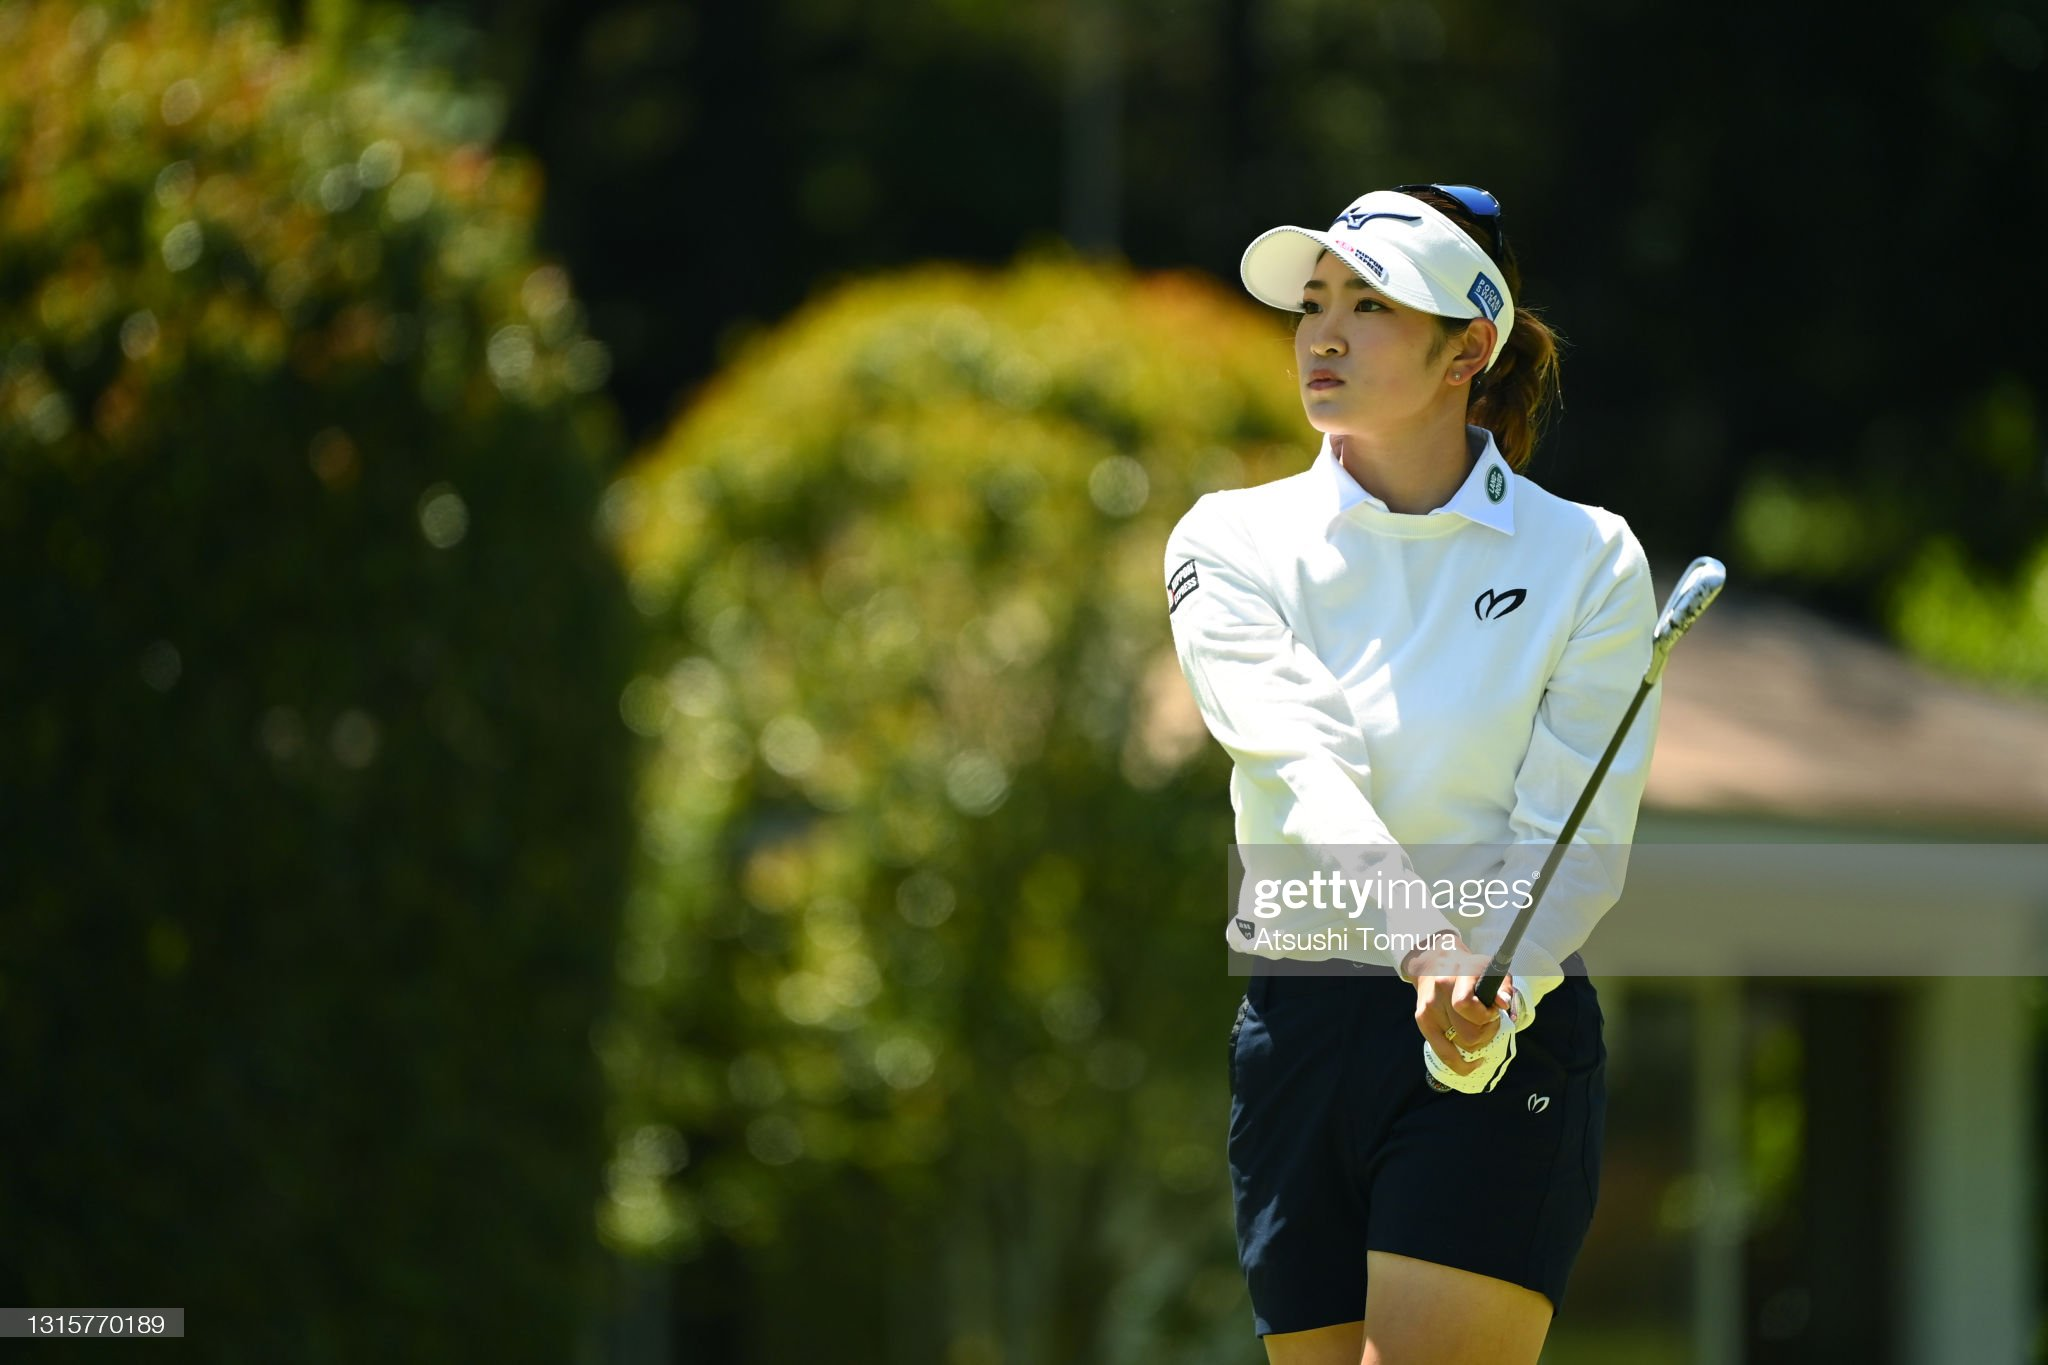 https://media.gettyimages.com/photos/erika-hara-of-japan-hits-her-tee-shot-on-the-13th-hole-during-the-picture-id1315770189?s=2048x2048